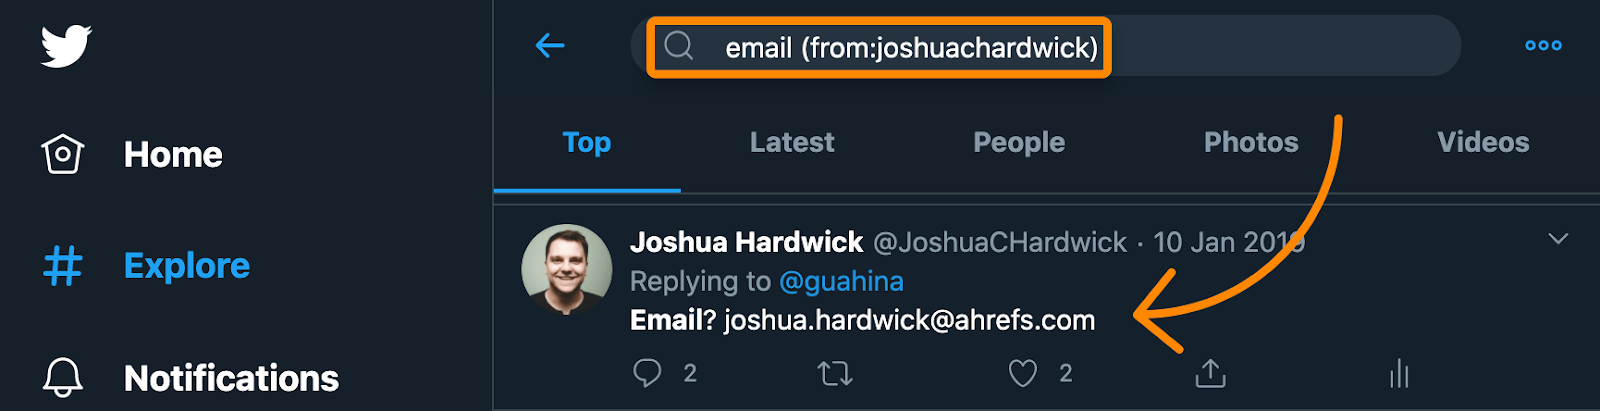 email twitter unciphered 1